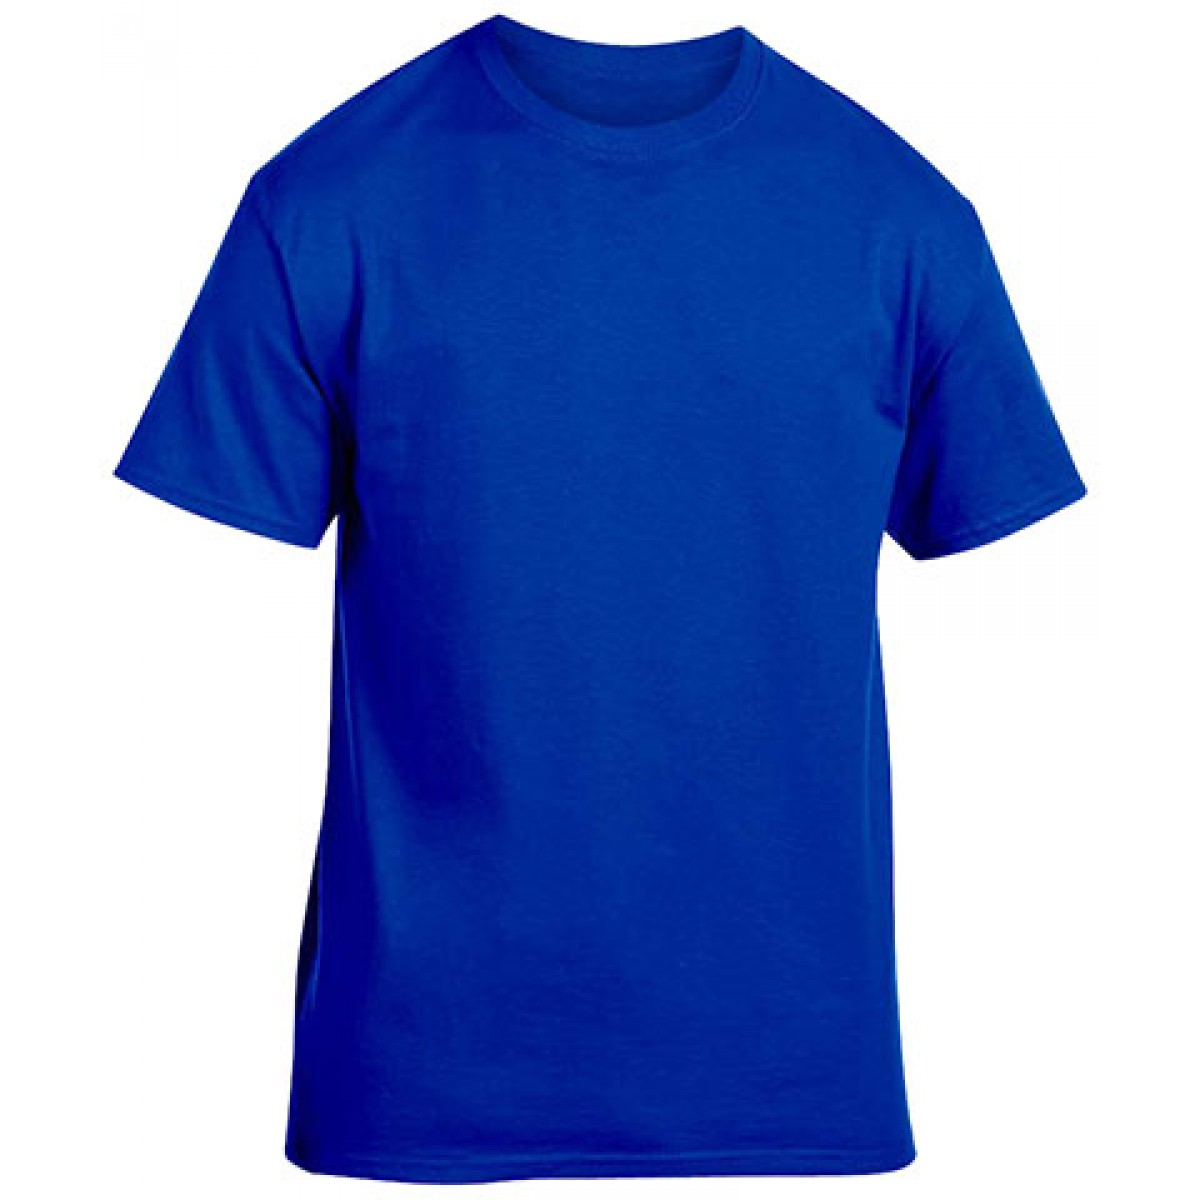 Cotton Short Sleeve T-Shirt-Royal Blue-YL